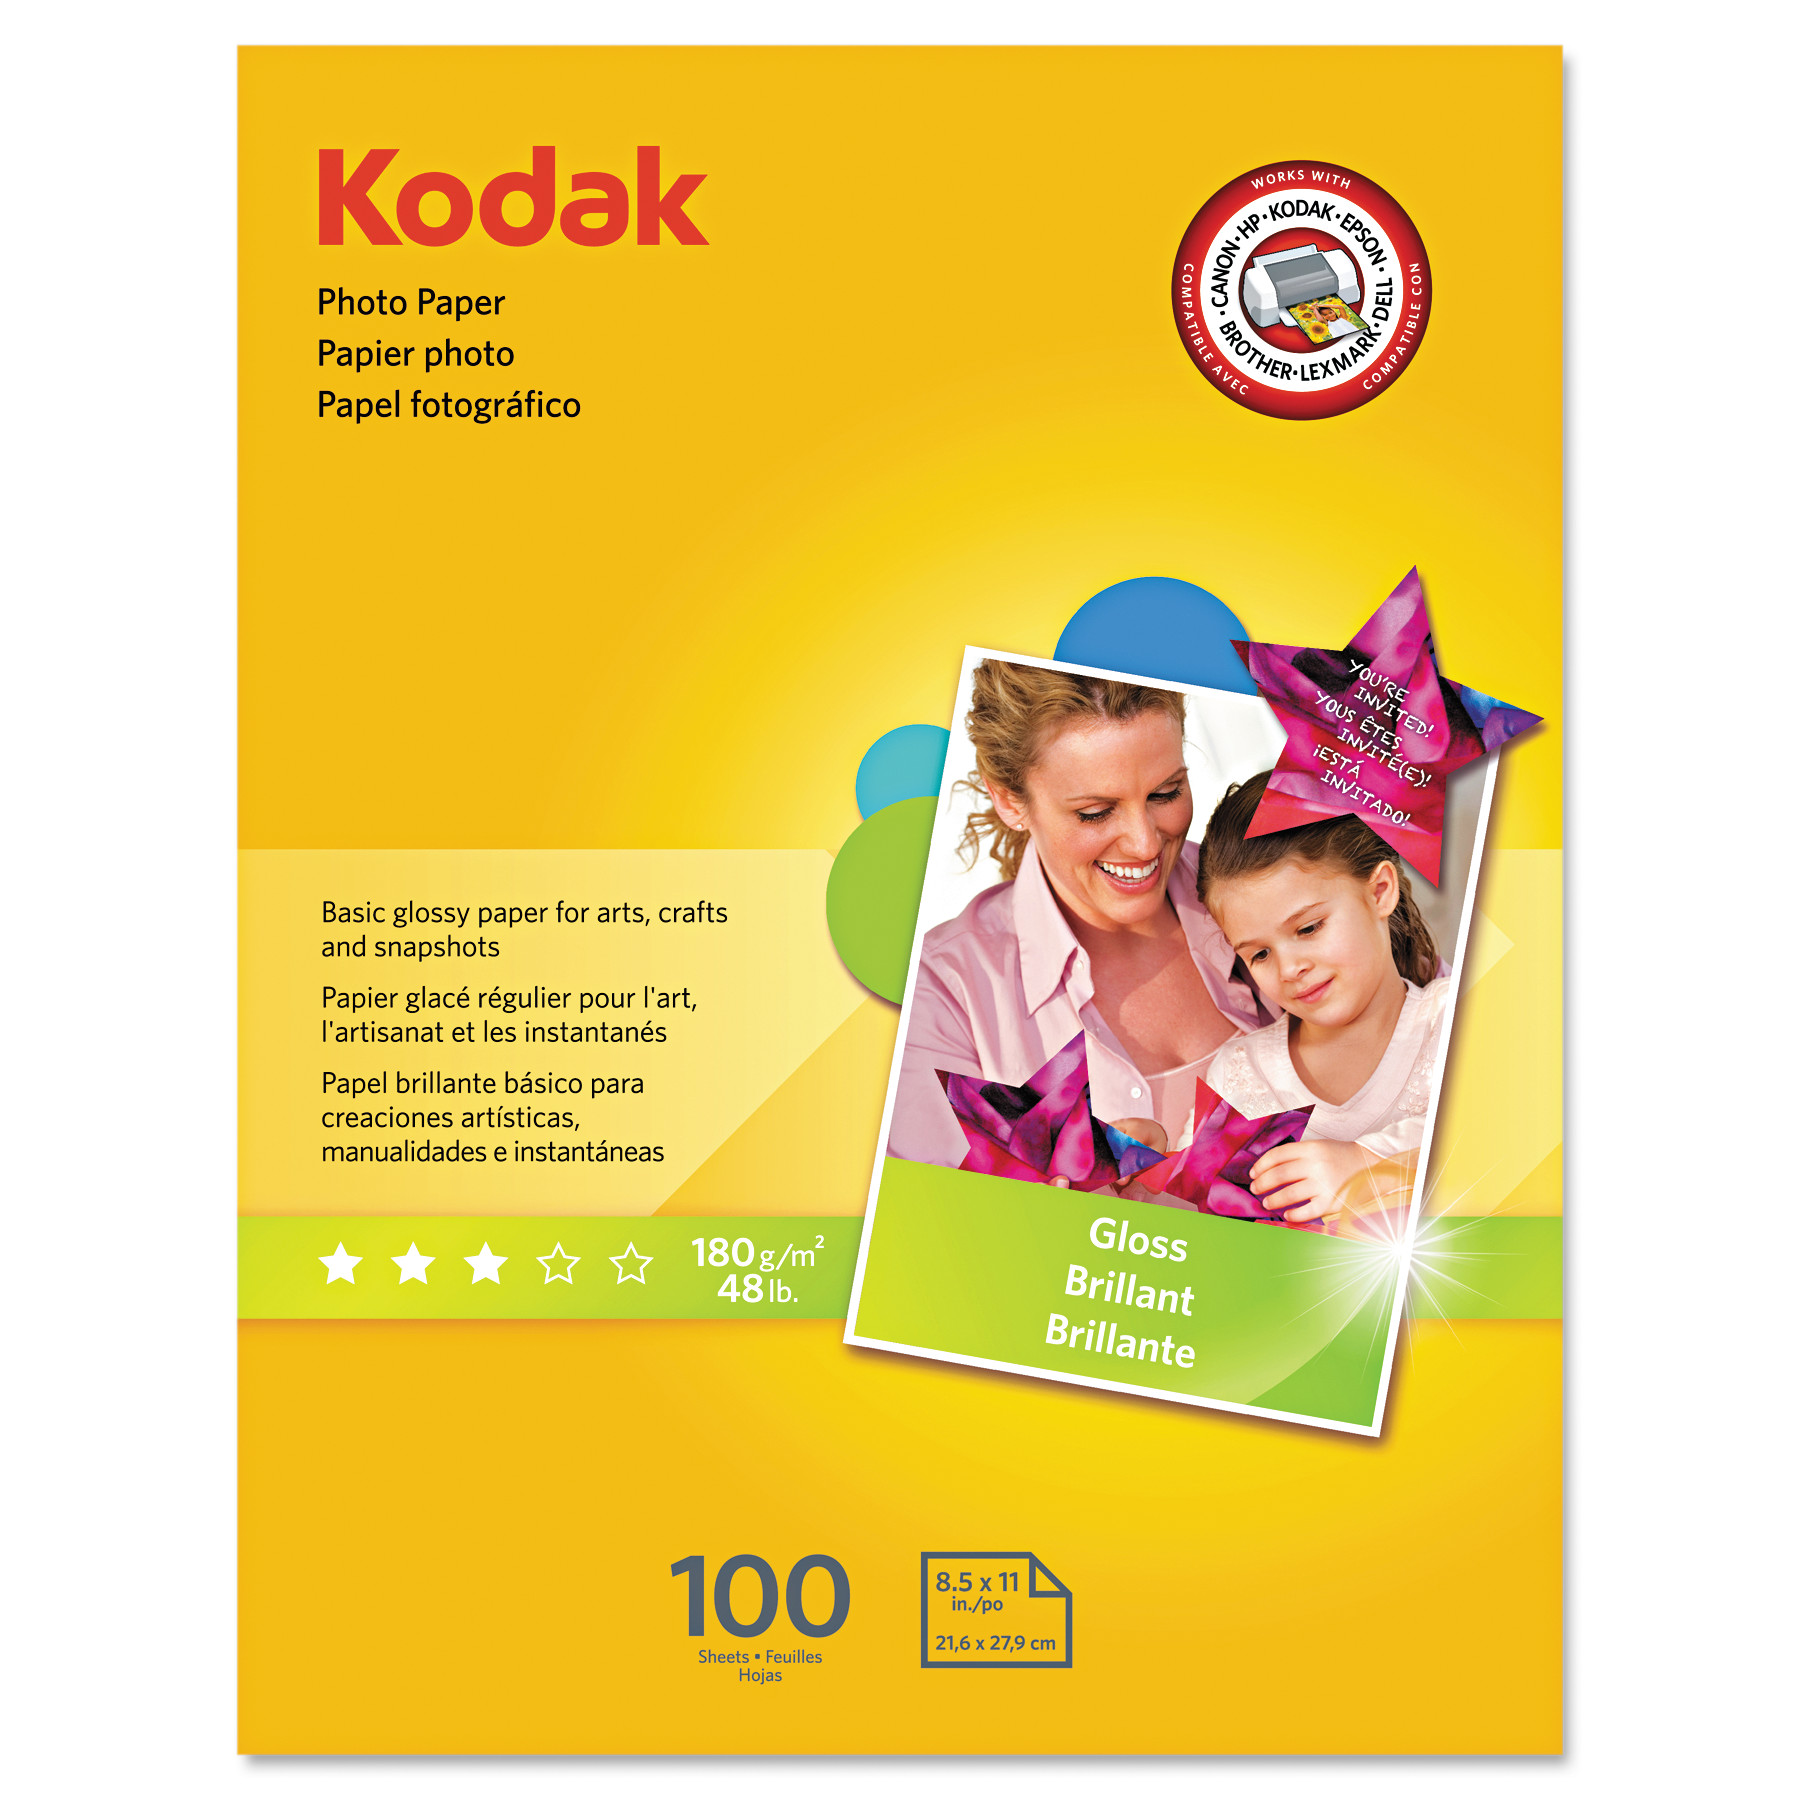 Kodak Photo Paper, 6.5 mil, Glossy, 8-1/2 x 11, 100 Sheets/Pack -KOD8209017